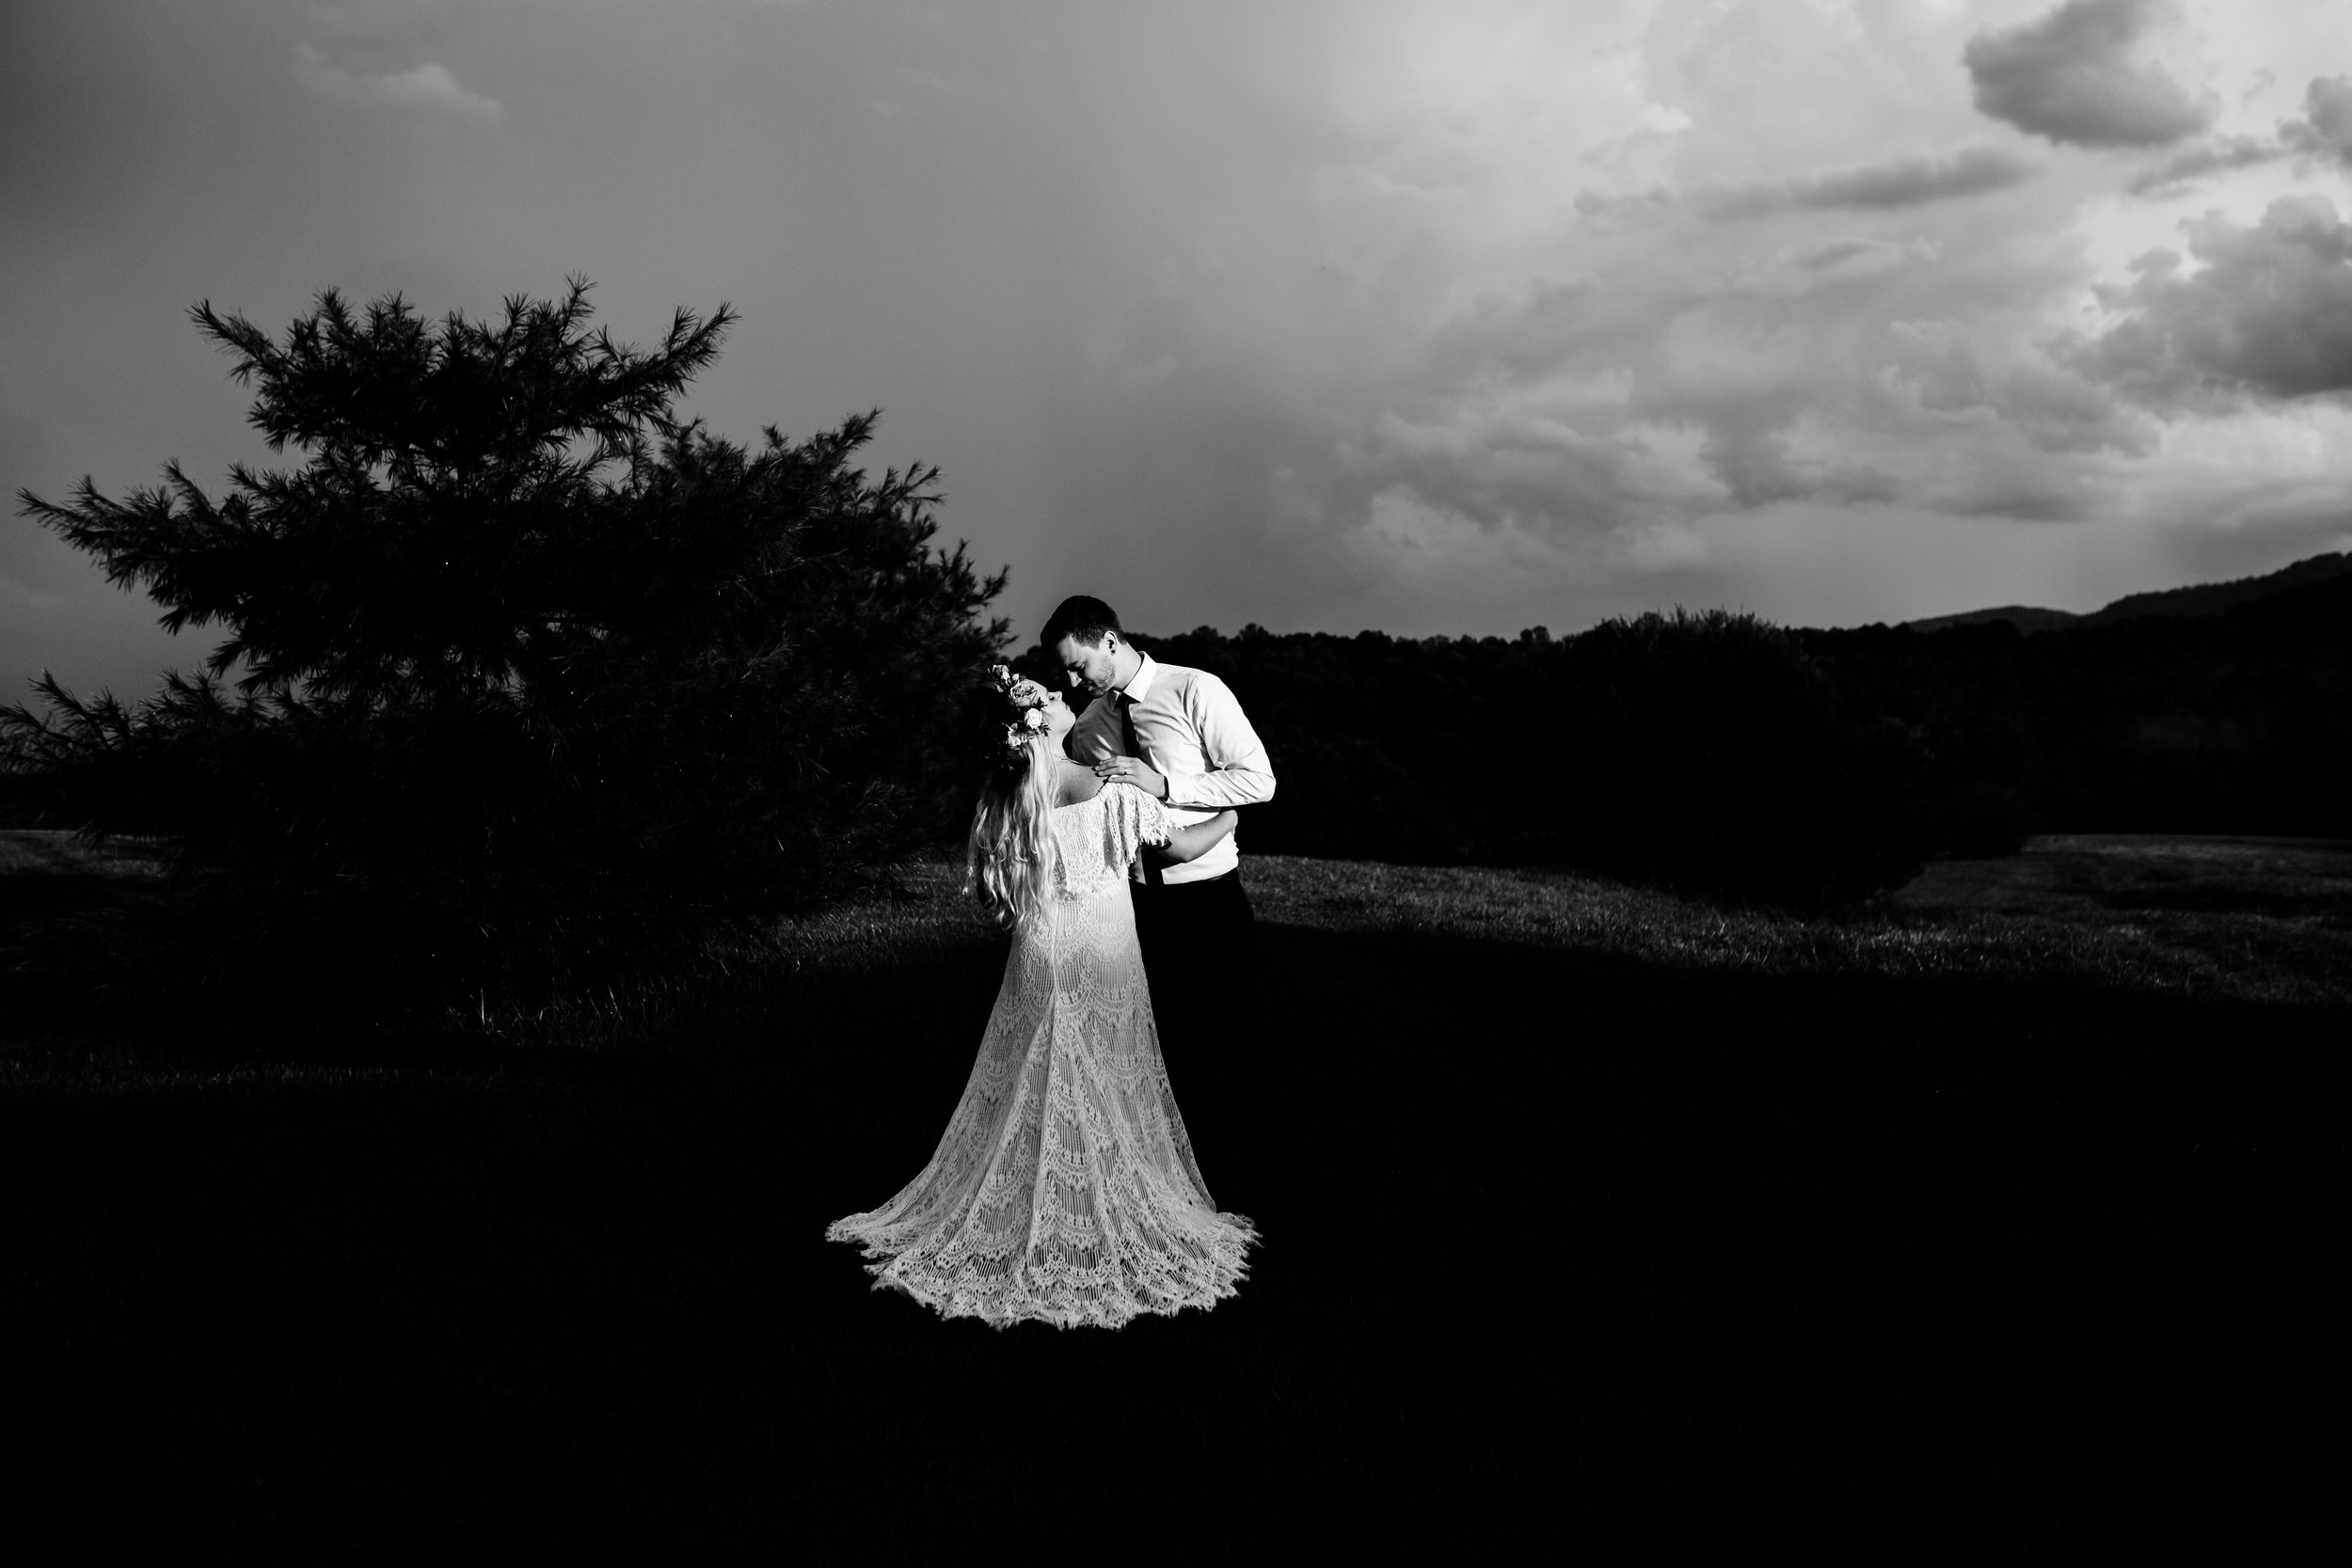 black and white wedding photography.jpg